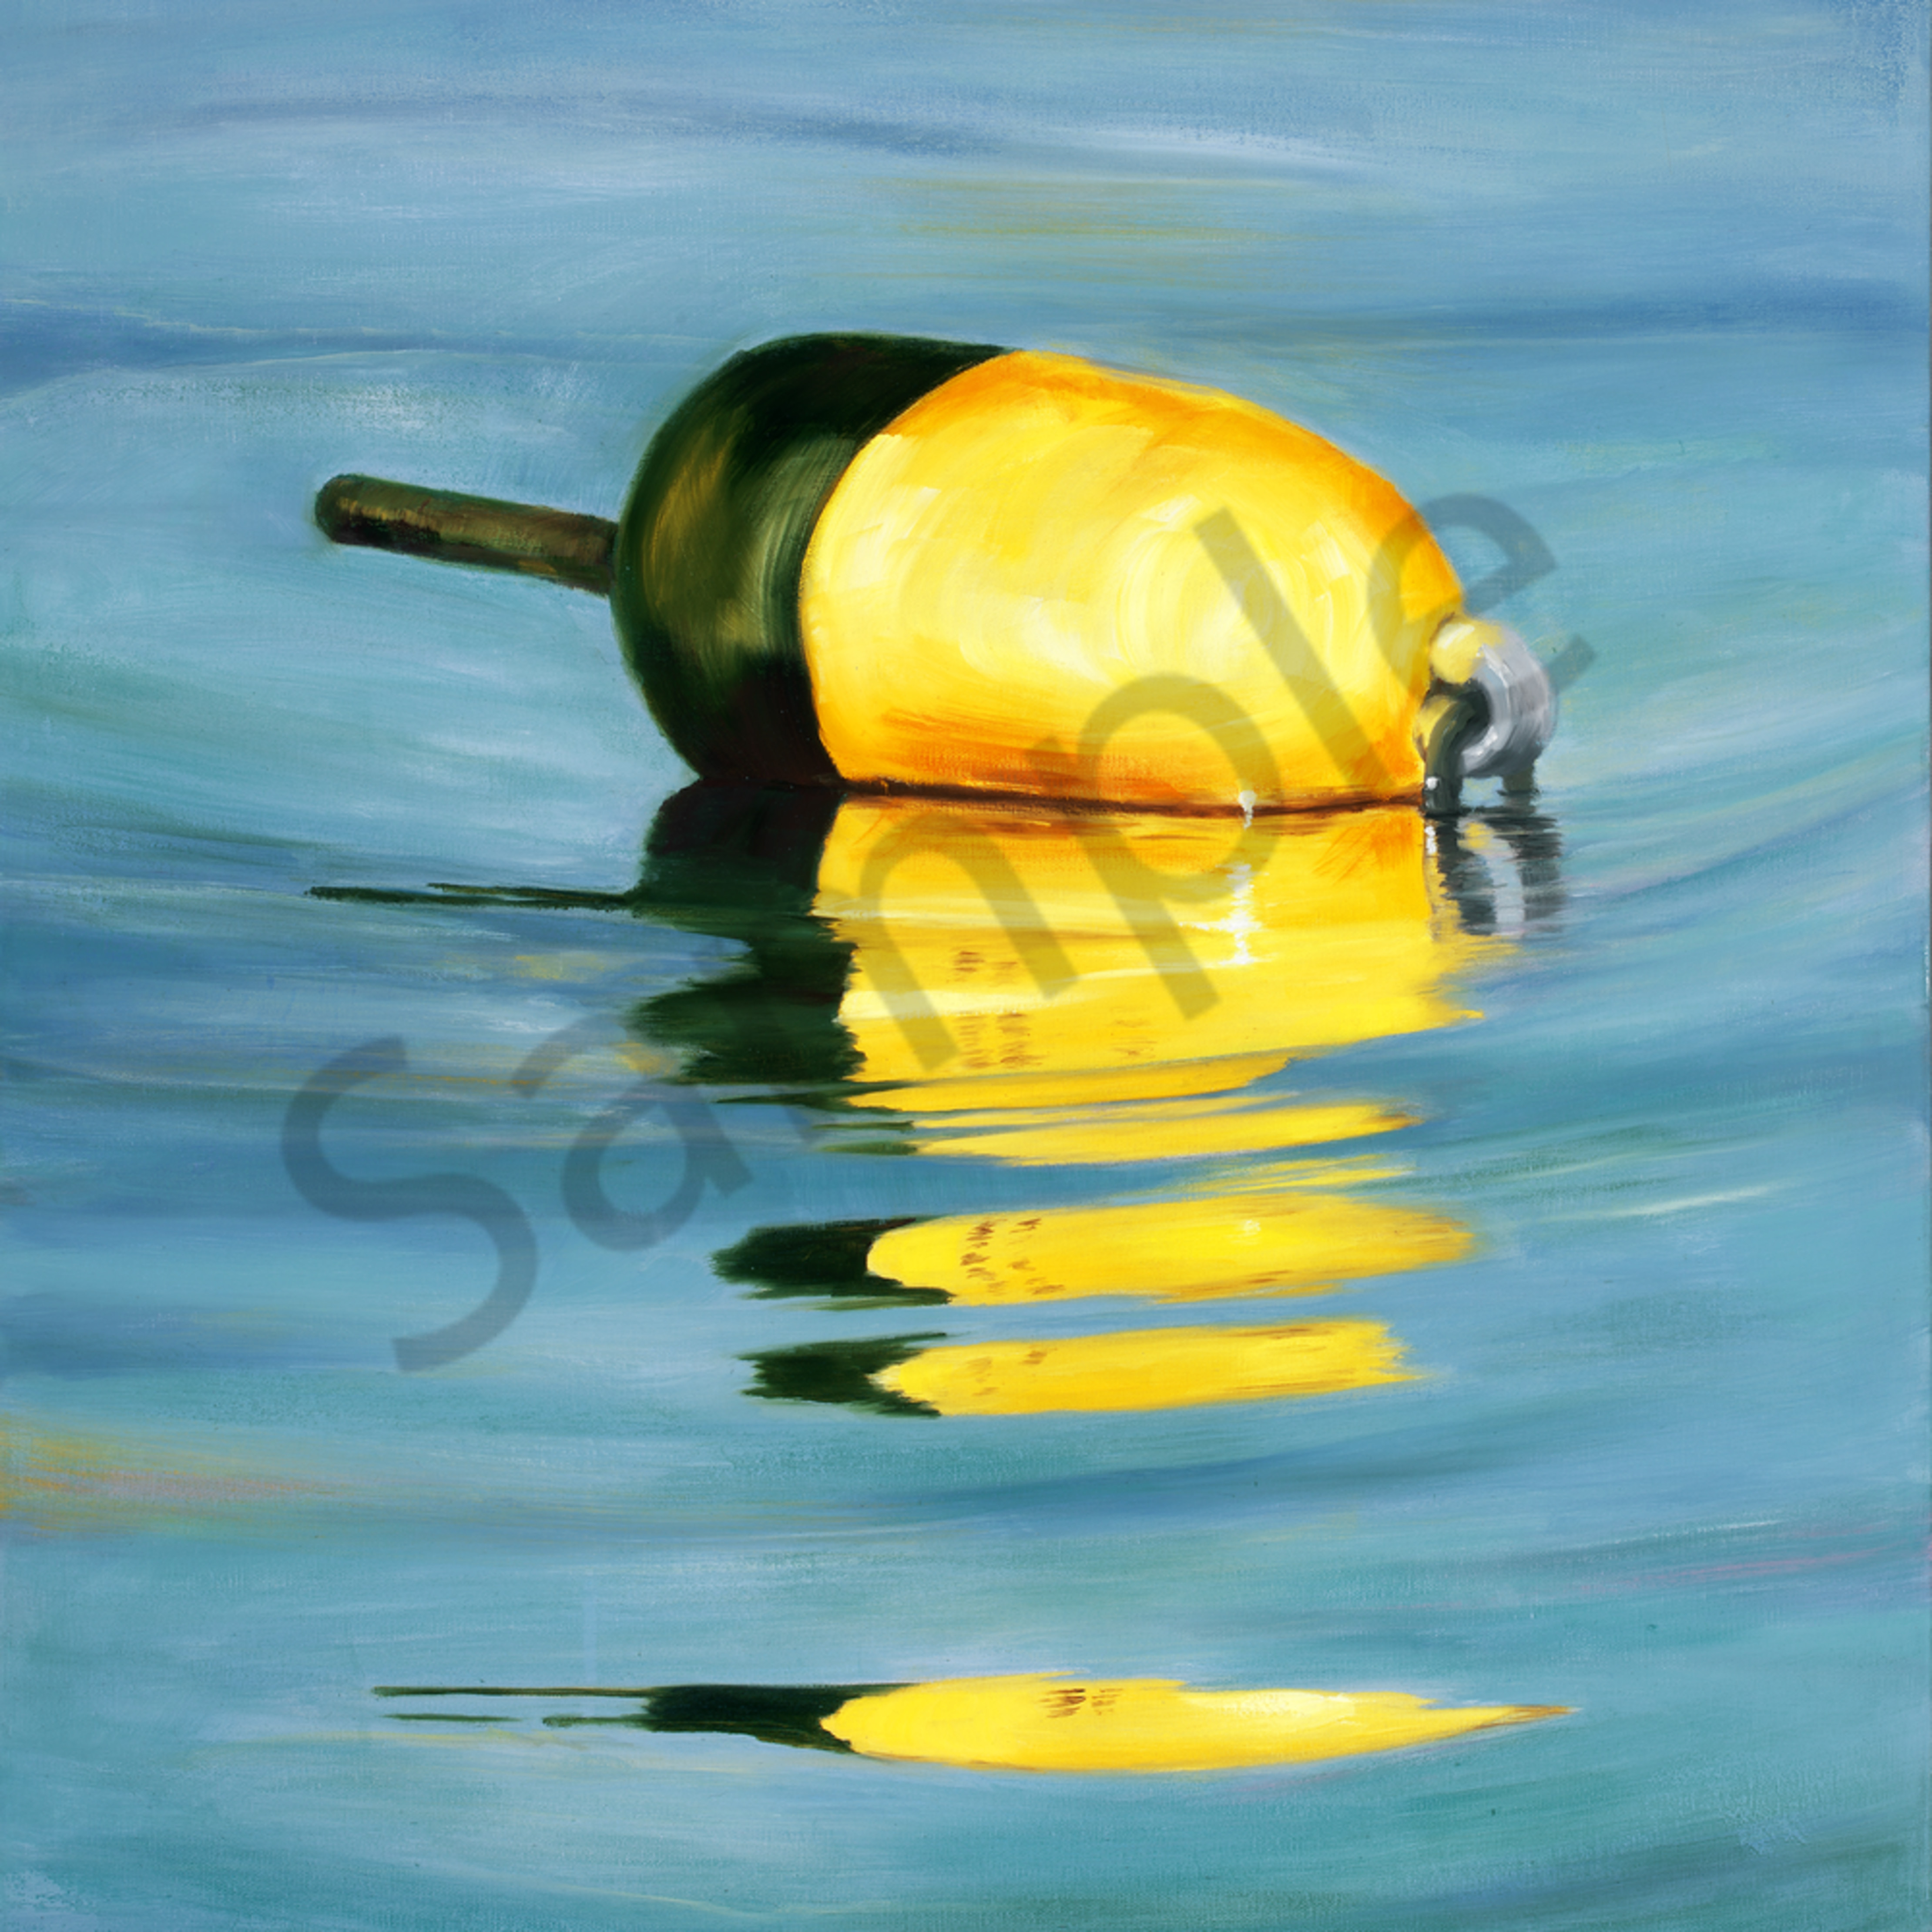 Picture 205 yellow lorster buoy 24x36 crop b flat 84mg wvsas2